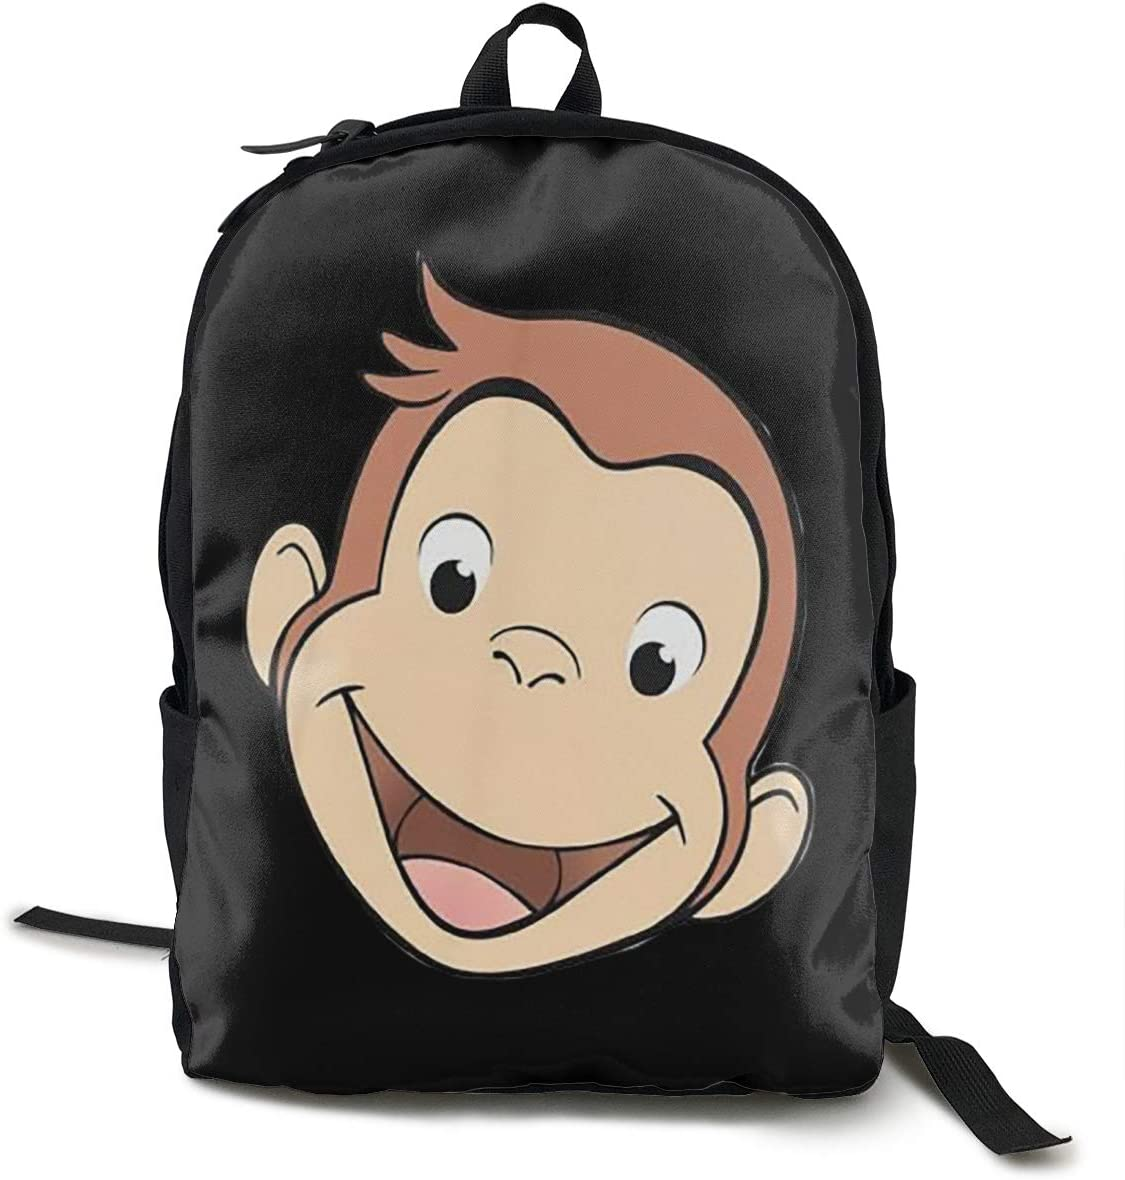 Reagan Curious George Jersey Unisex Multi-Function Outdoor Travel Backpack